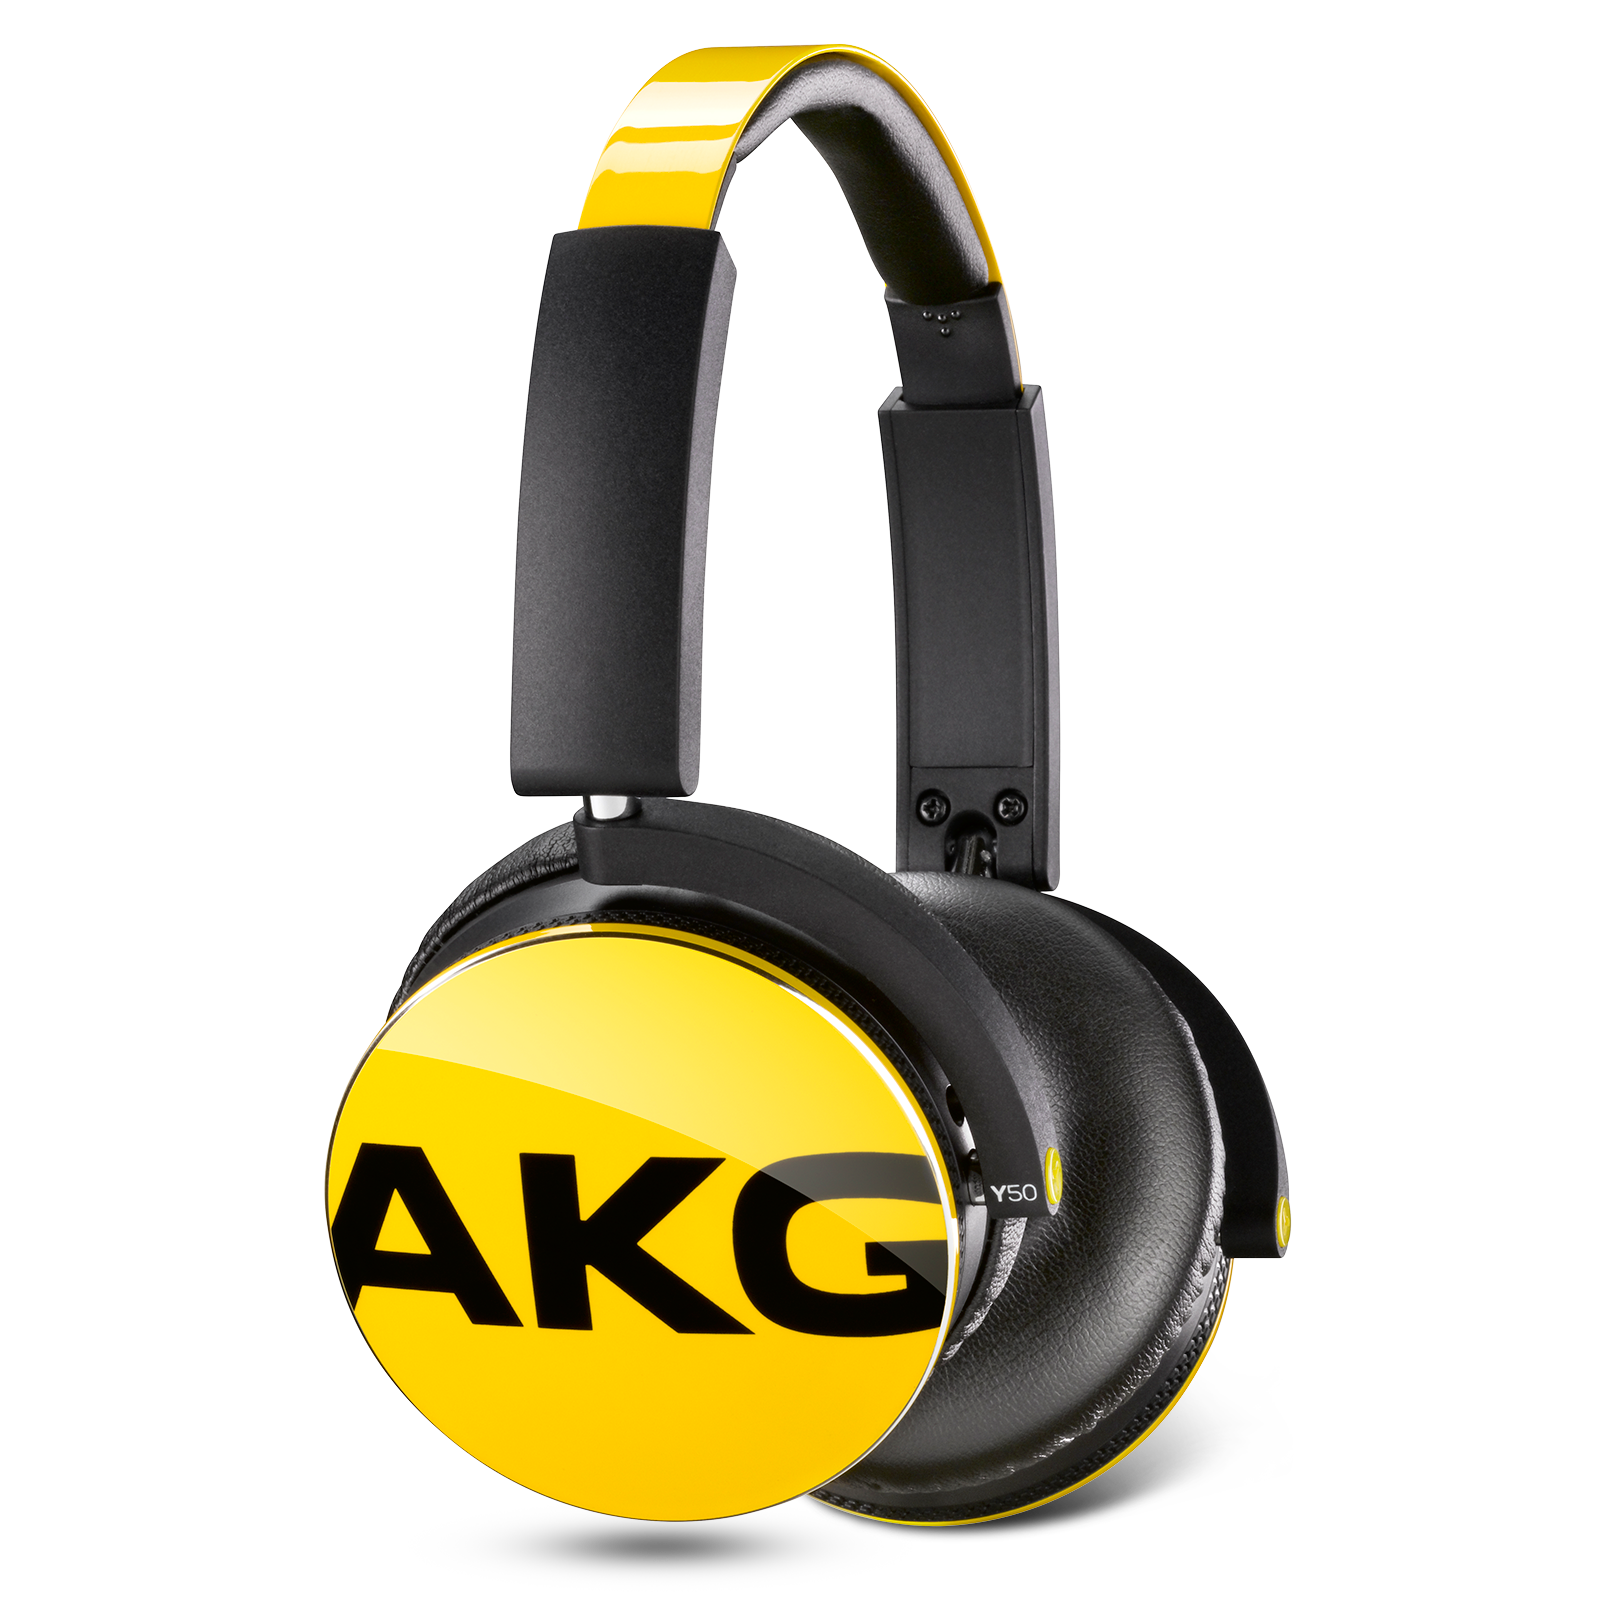 Y50 - Yellow - On-ear headphones with AKG-quality sound, smart styling, snug fit and detachable cable with in-line remote/mic - Detailshot 3